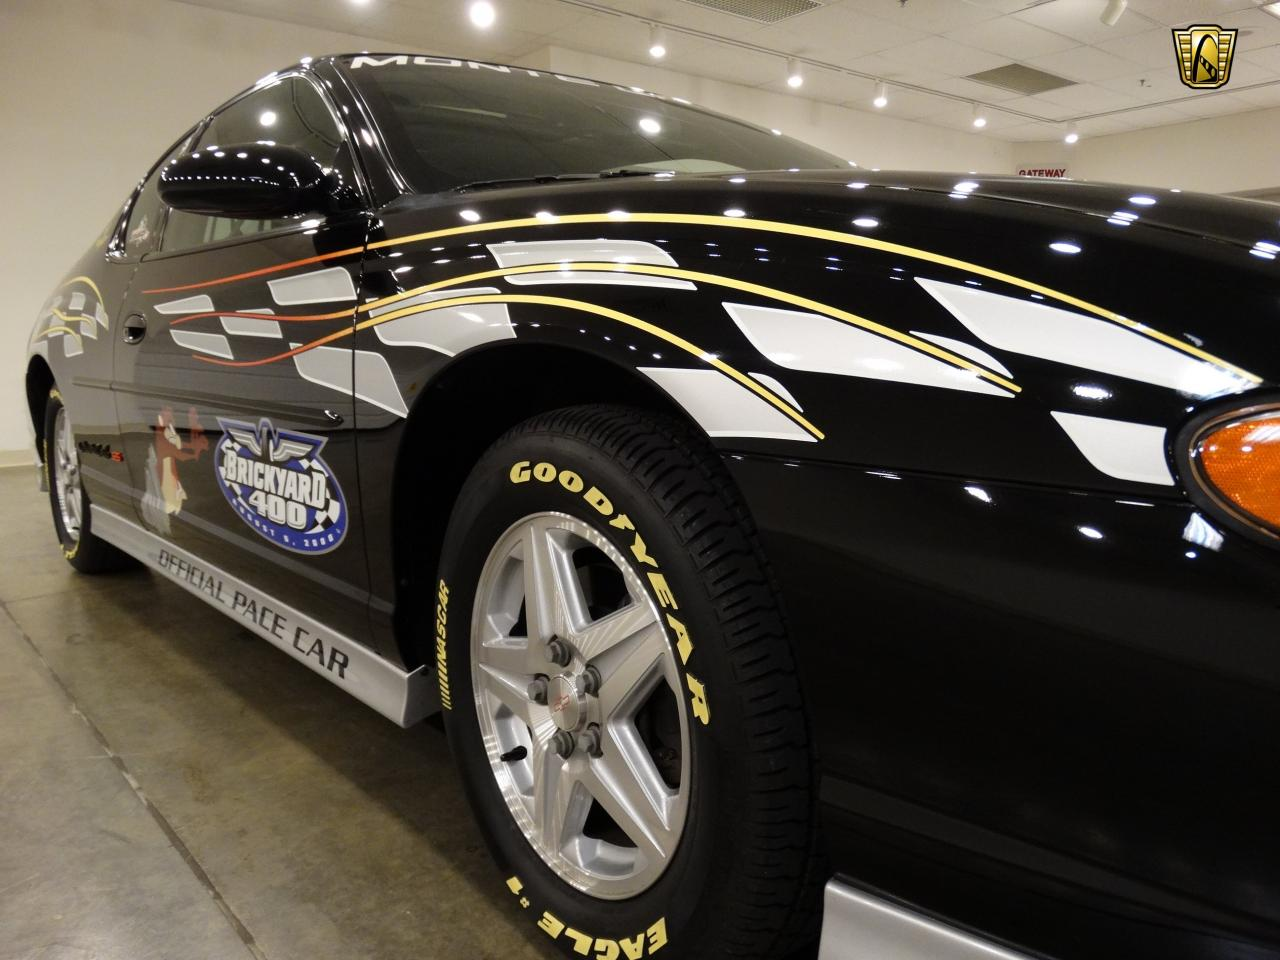 2018 Chevrolet Monte Carlo Brickyard Pace Car photo - 4